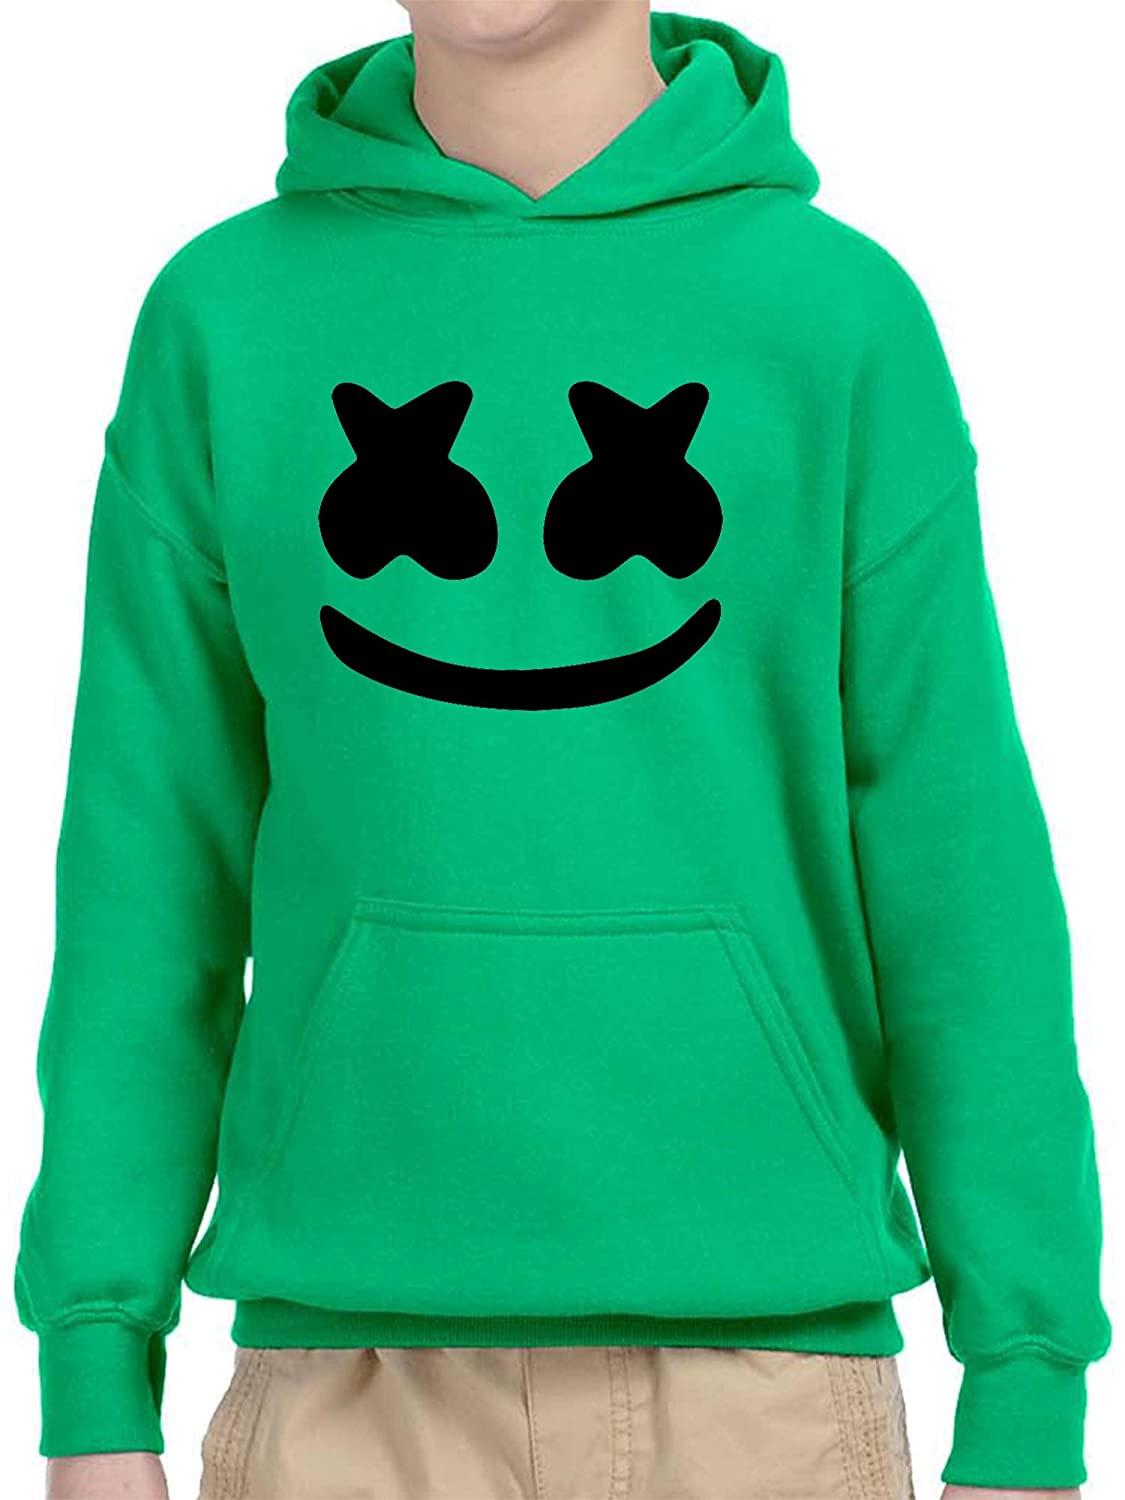 New Way 935 - Youth Hoodie Marshmello DJ Smiley Face Unisex Pullover Sweatshirt